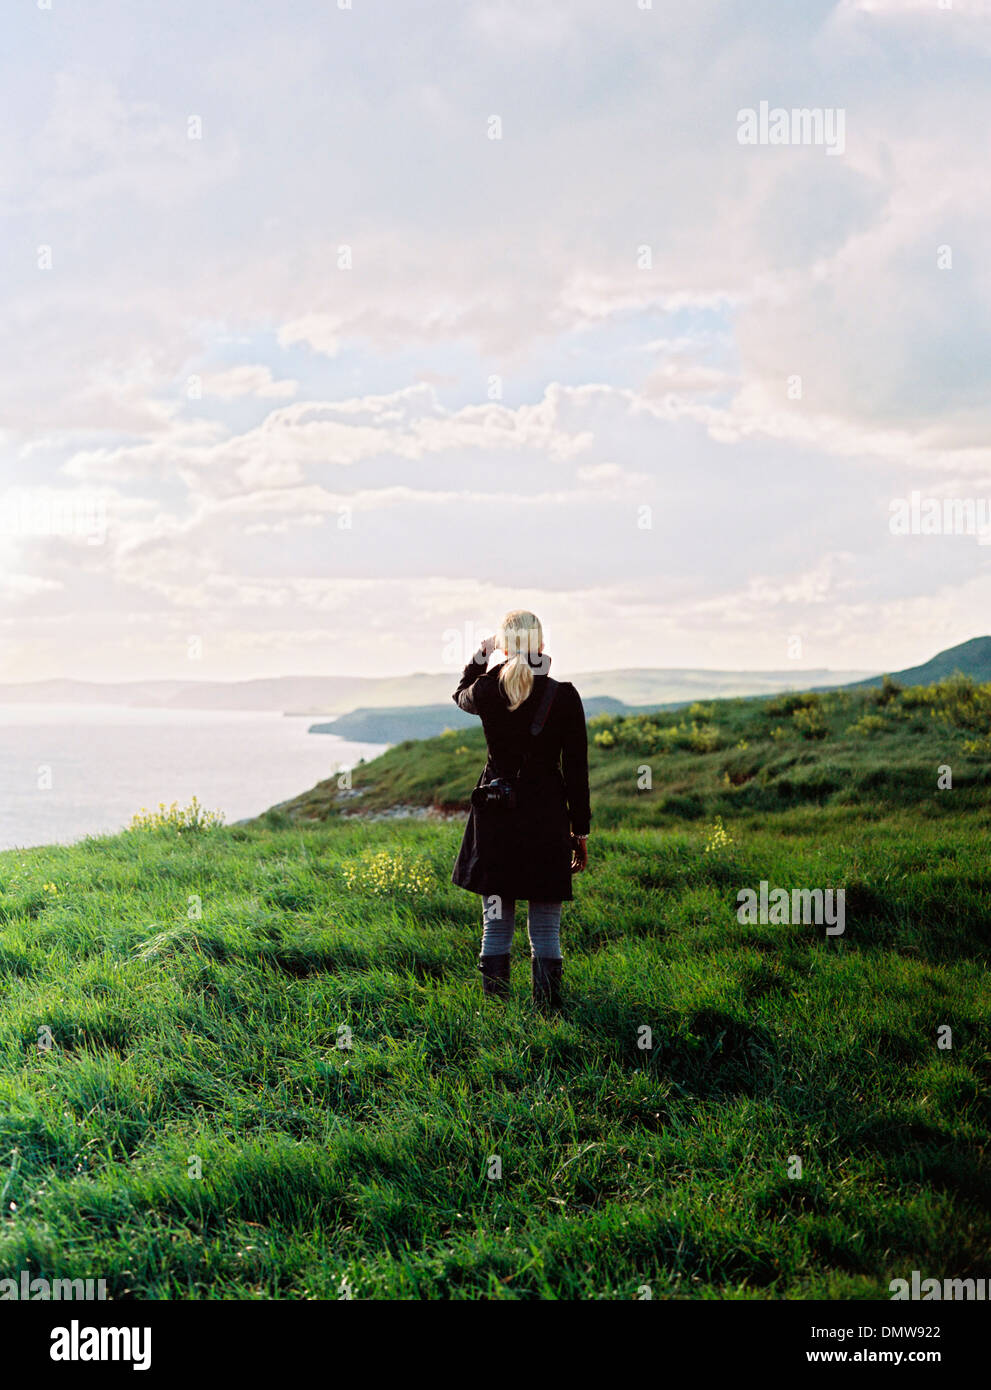 A woman looking along  coastline inlets and cliffs. - Stock Image